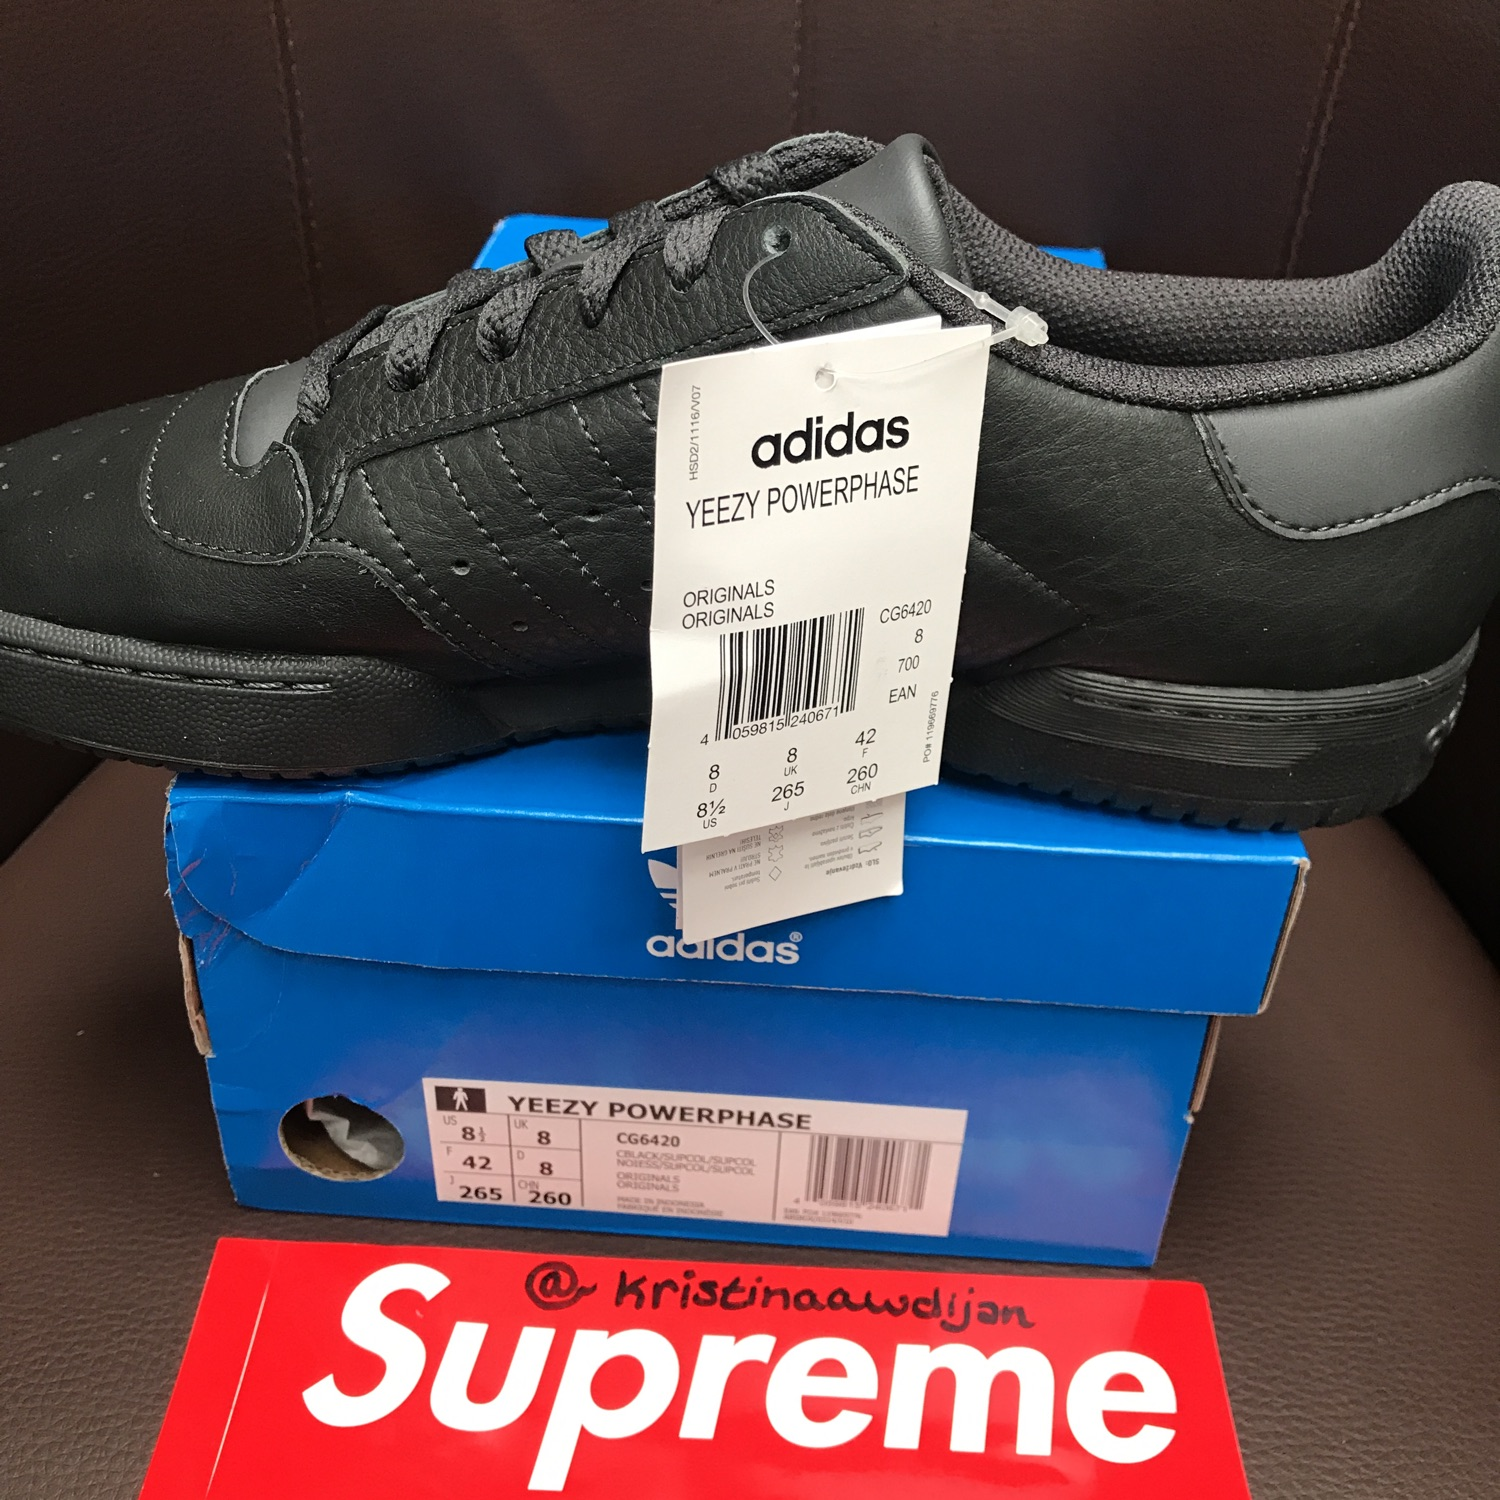 sneakers for cheap 6e511 1ee30 Adidas Yeezy Powerphase Eu 42 Us 8.5 Uk 8